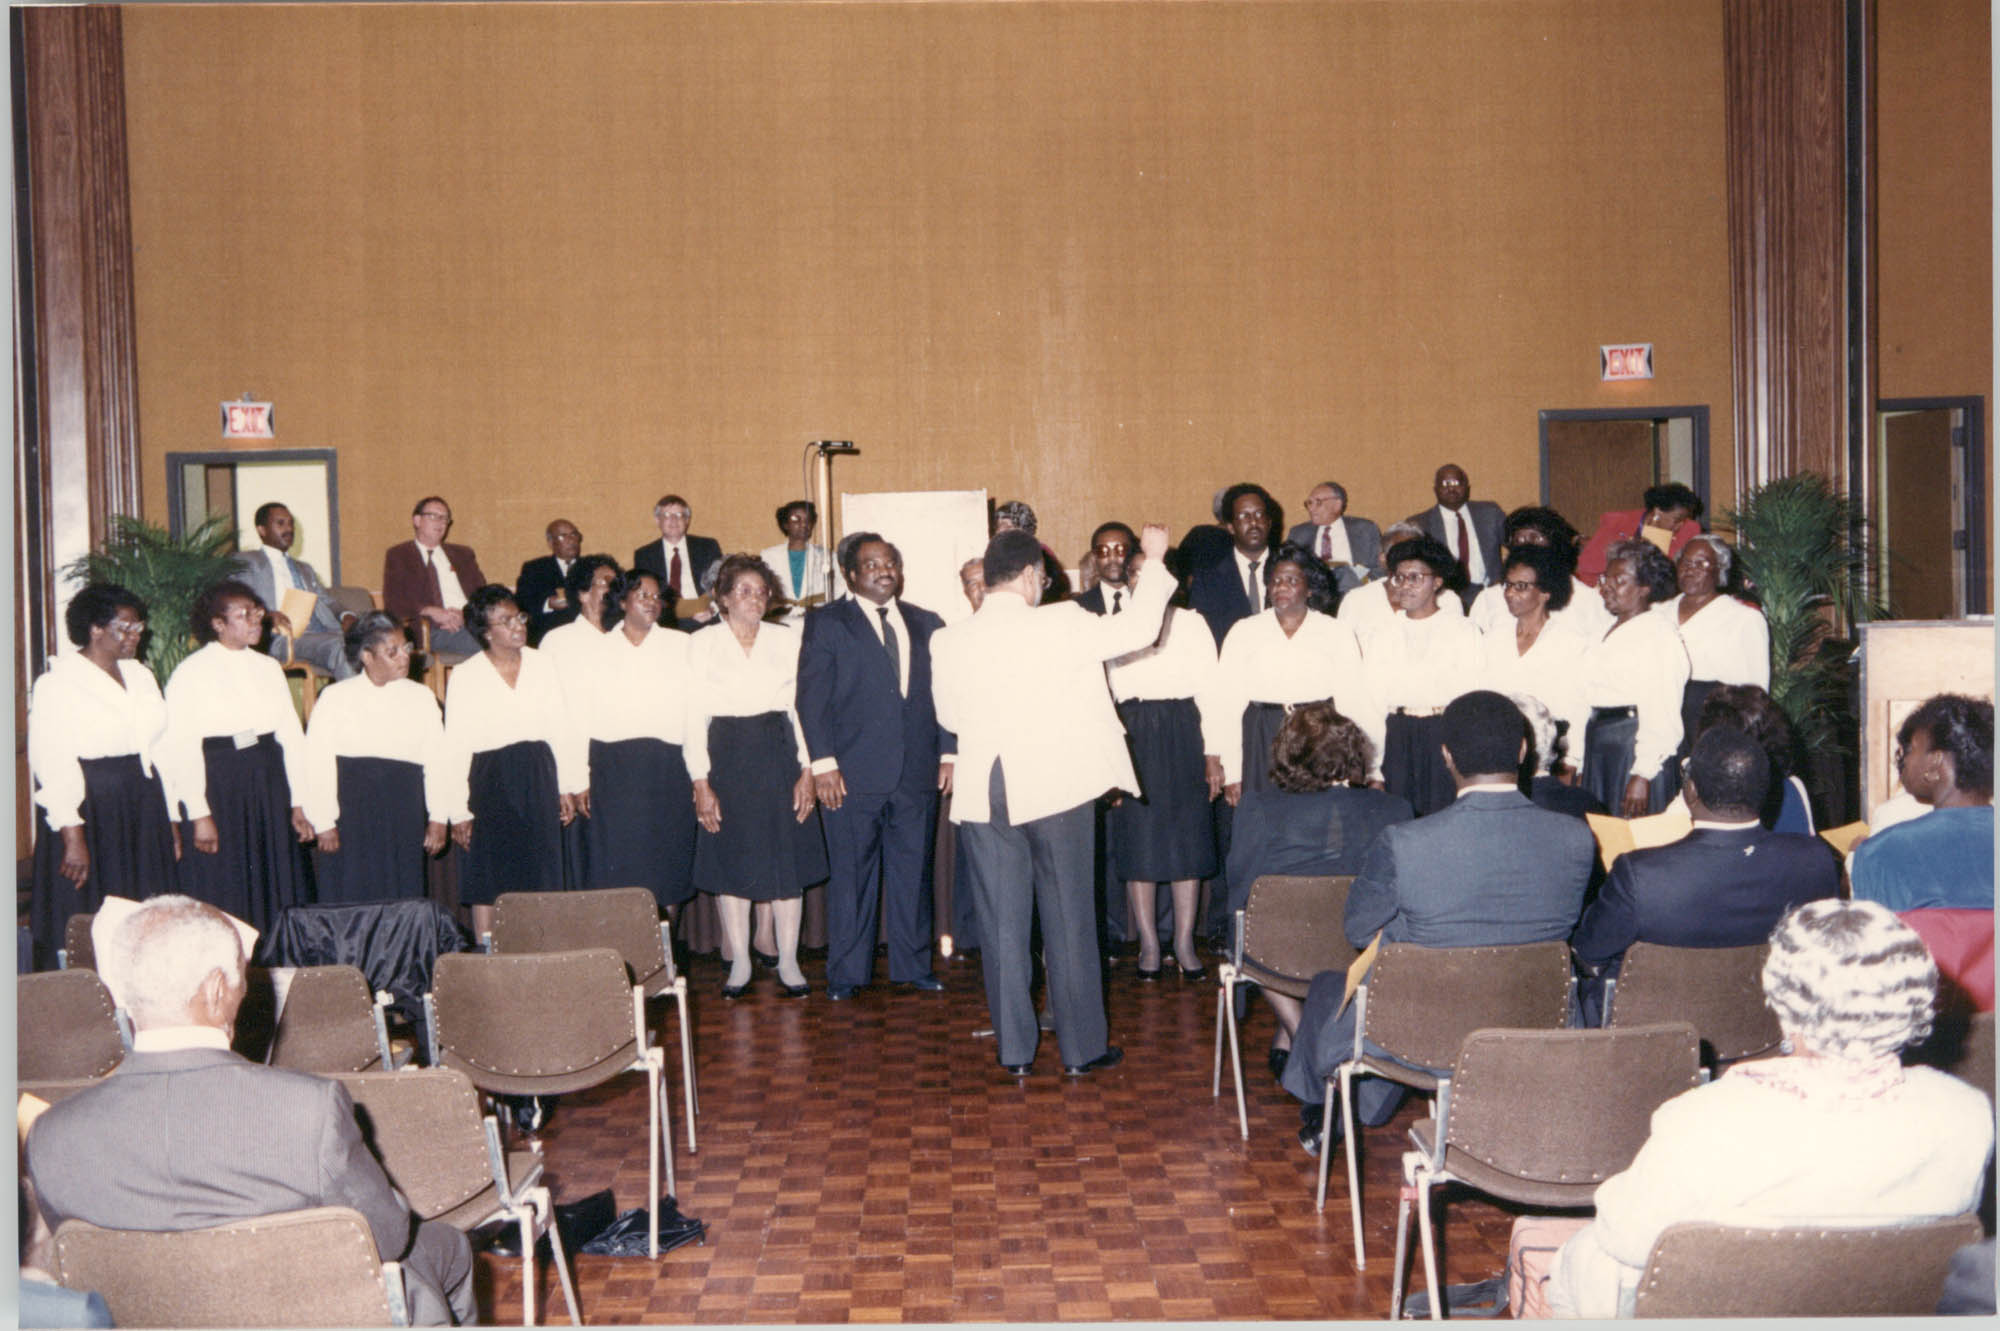 Photograph of the Martin Luther King Interdenominational Choir at a College of Charleston Event